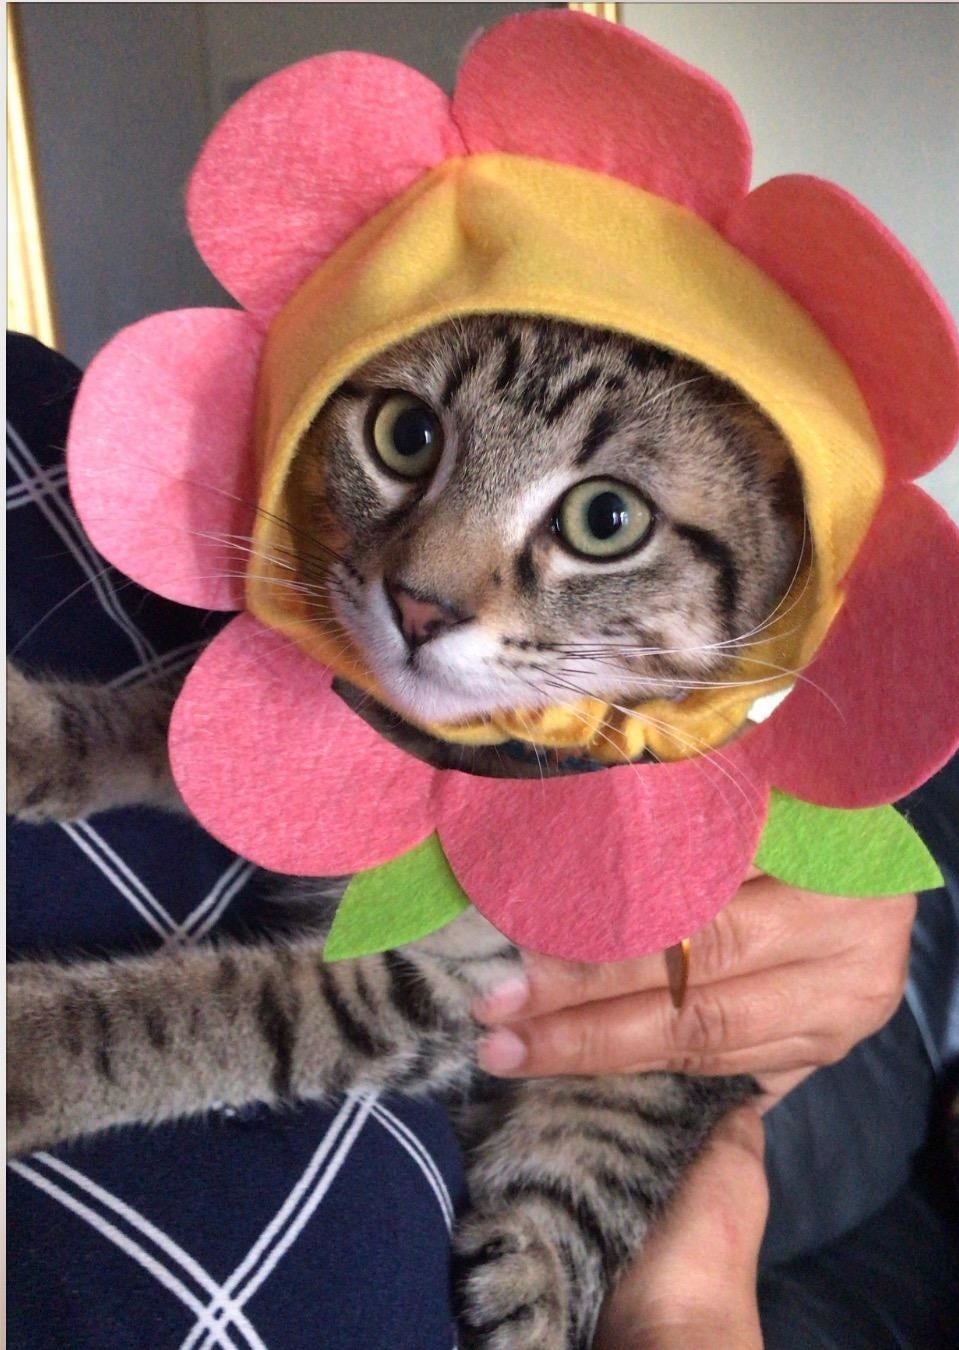 cat wears hat that has petals and leaves